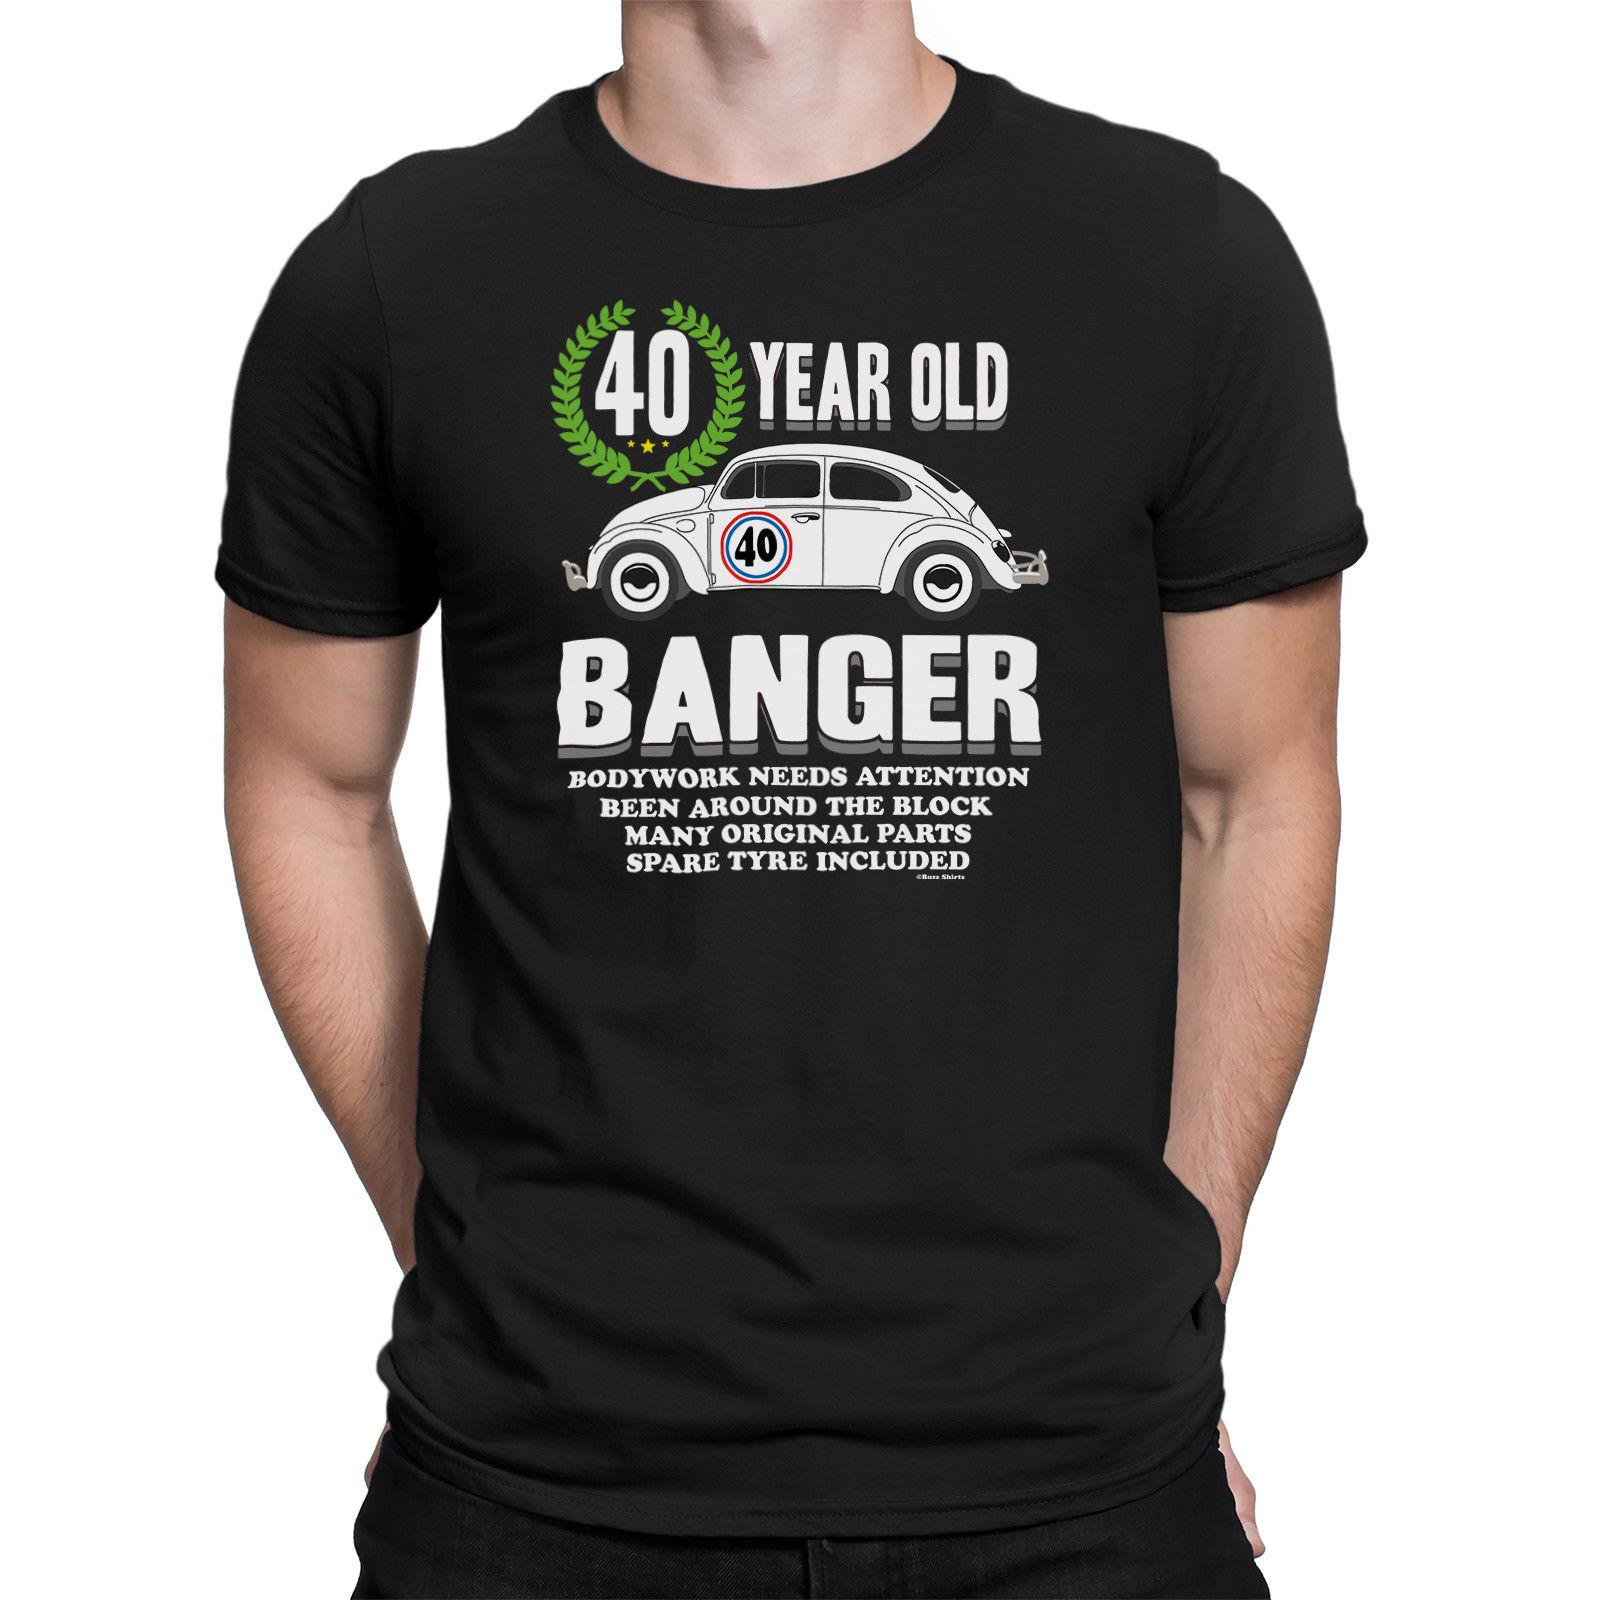 Mens 40th BIRTHDAY TShirt OLD BANGER 40 Years Old Joke Gift Forty Awesome Tee Shirt Designs T Shirts From Goosedj71 1163